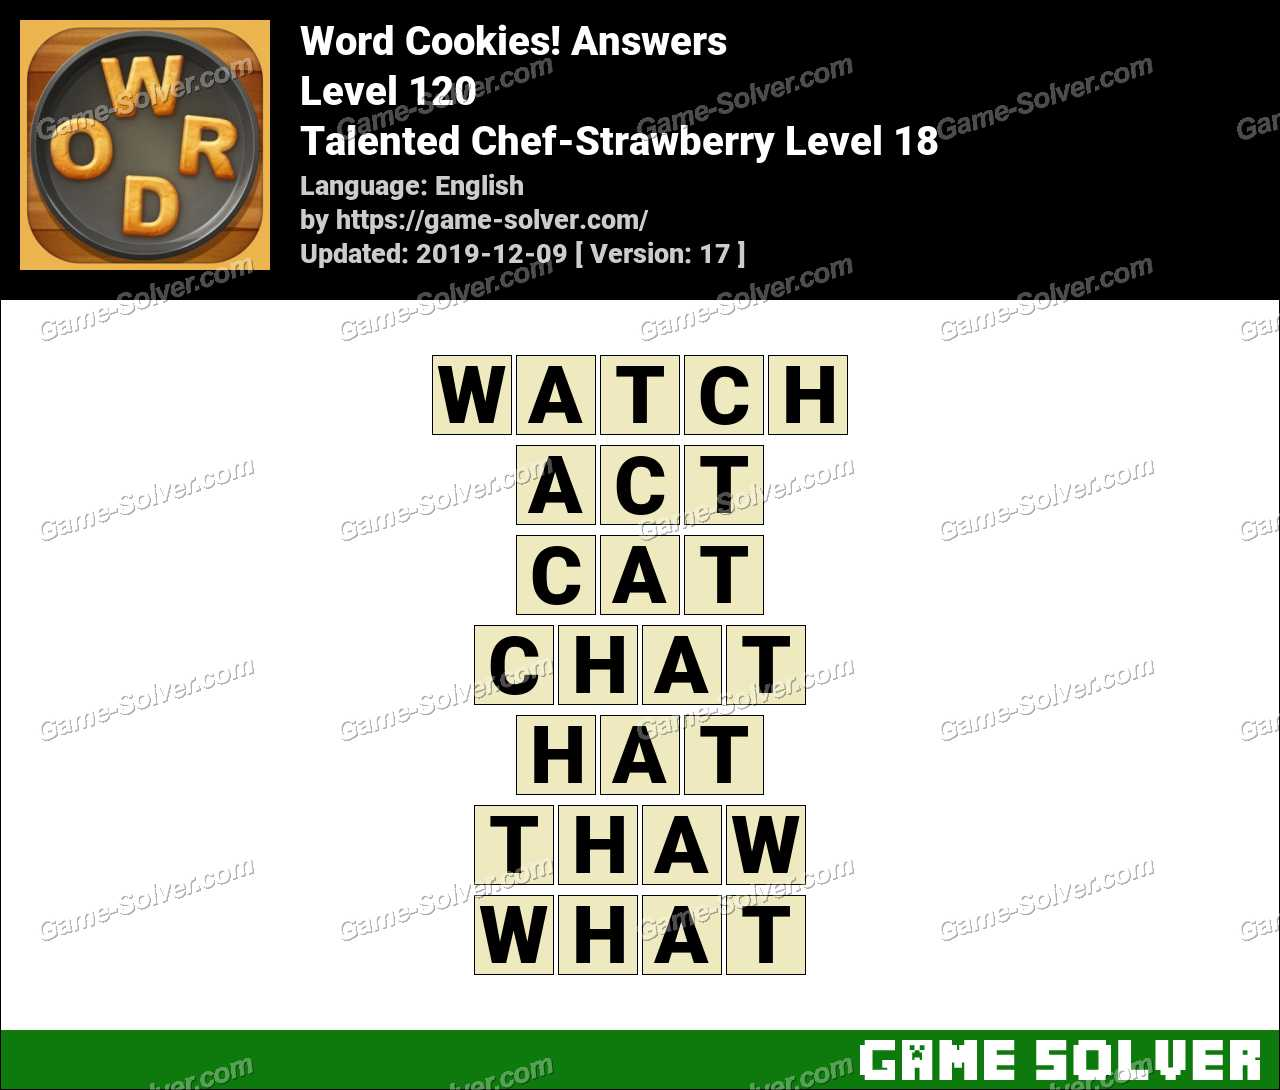 Word Cookies Talented Chef-Strawberry Level 18 Answers